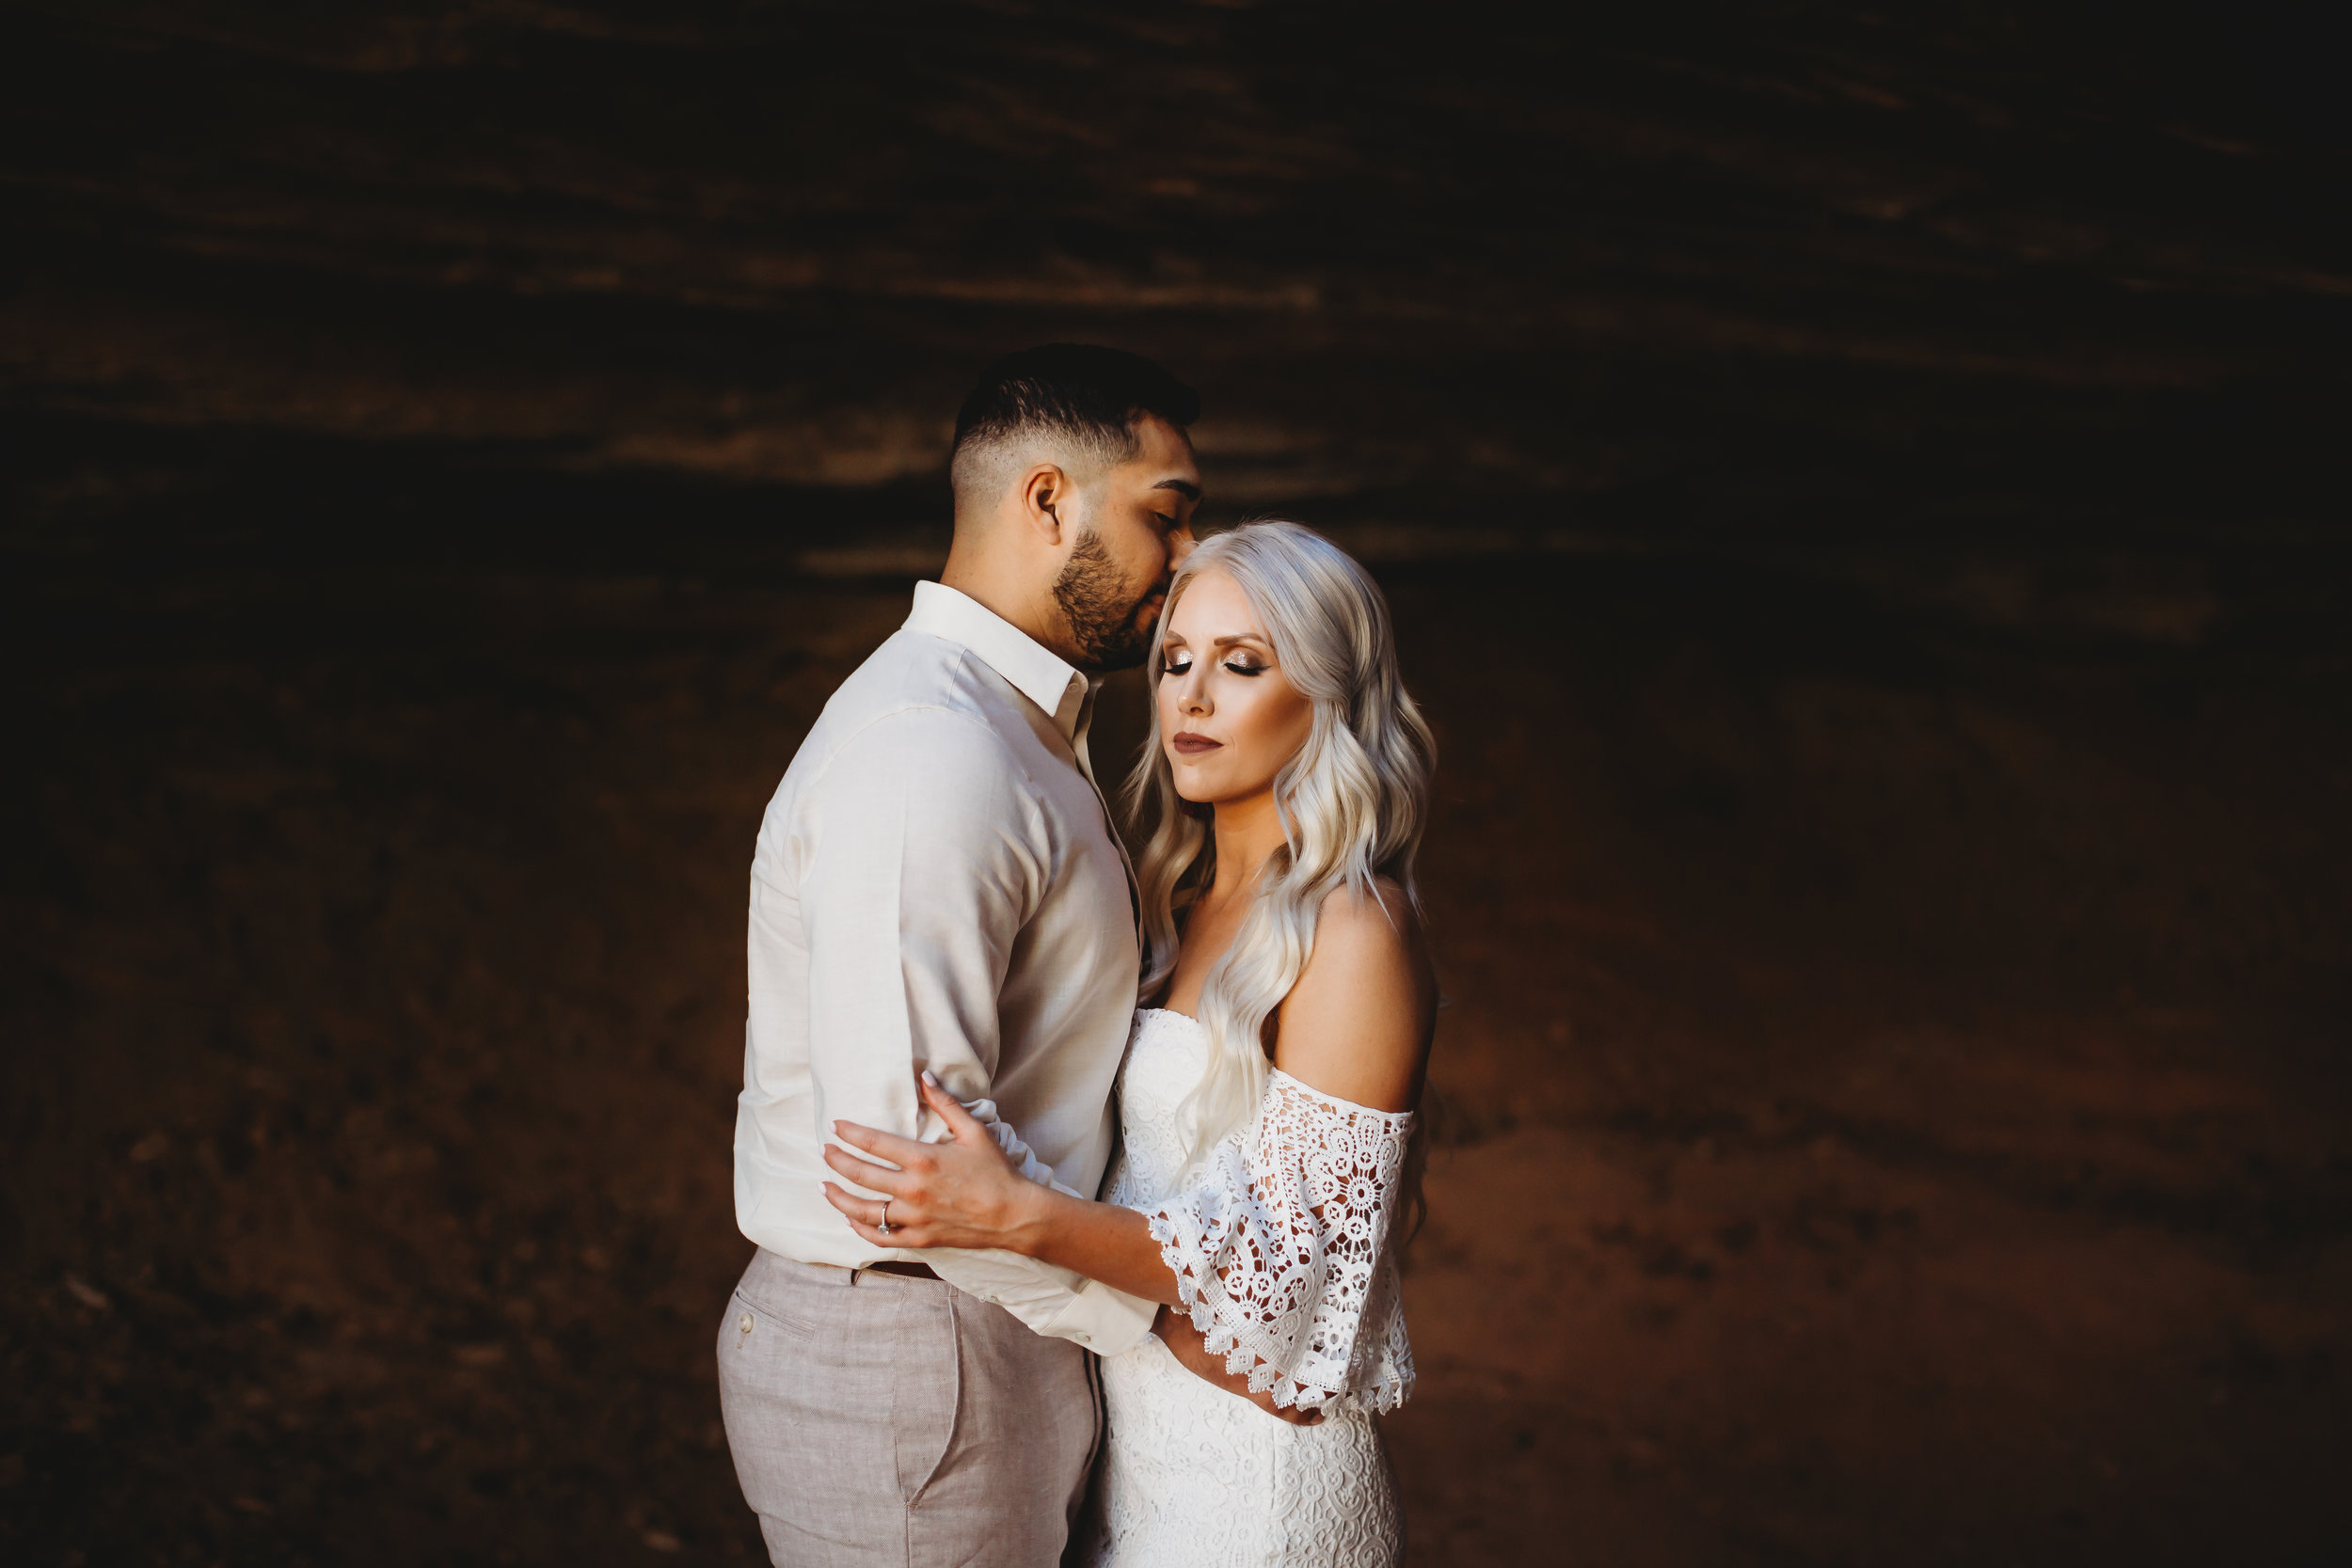 Casual neutral outfits in front of red rock with a kiss on the forehead #engagementphotos #riverfalls #engaged #personality #amarillotexas #engagementphotographer #lifestylephotos #amarillophotographer #locationchoice #texasengagementphotos #engagment #tealawardphotography #wildliferefuge